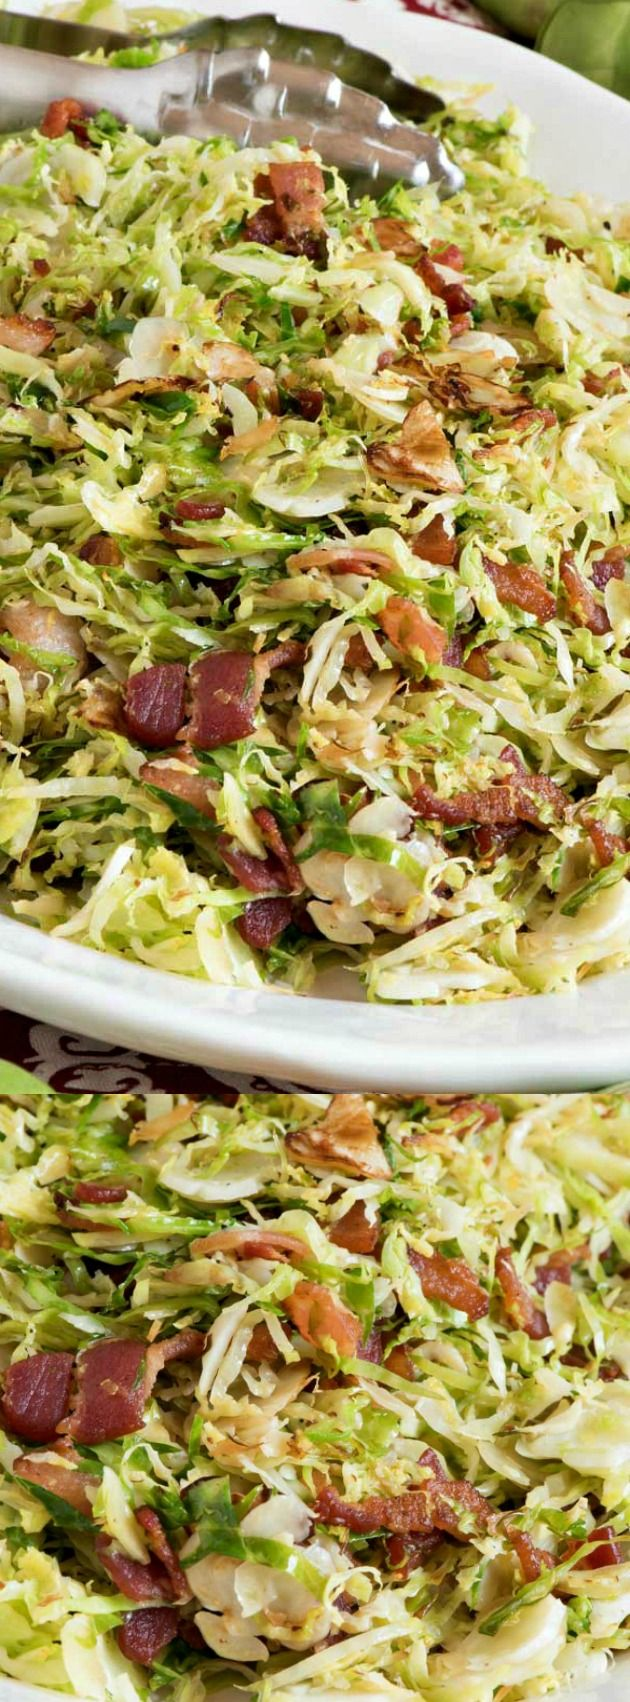 These Shaved Brussel Sprouts with Bacon from A Family Feast make a quick side dish that cooks up in just minutes! Thinly sliced brussel sprouts are fried with chopped bacon and a bit of salt and pepper to taste!